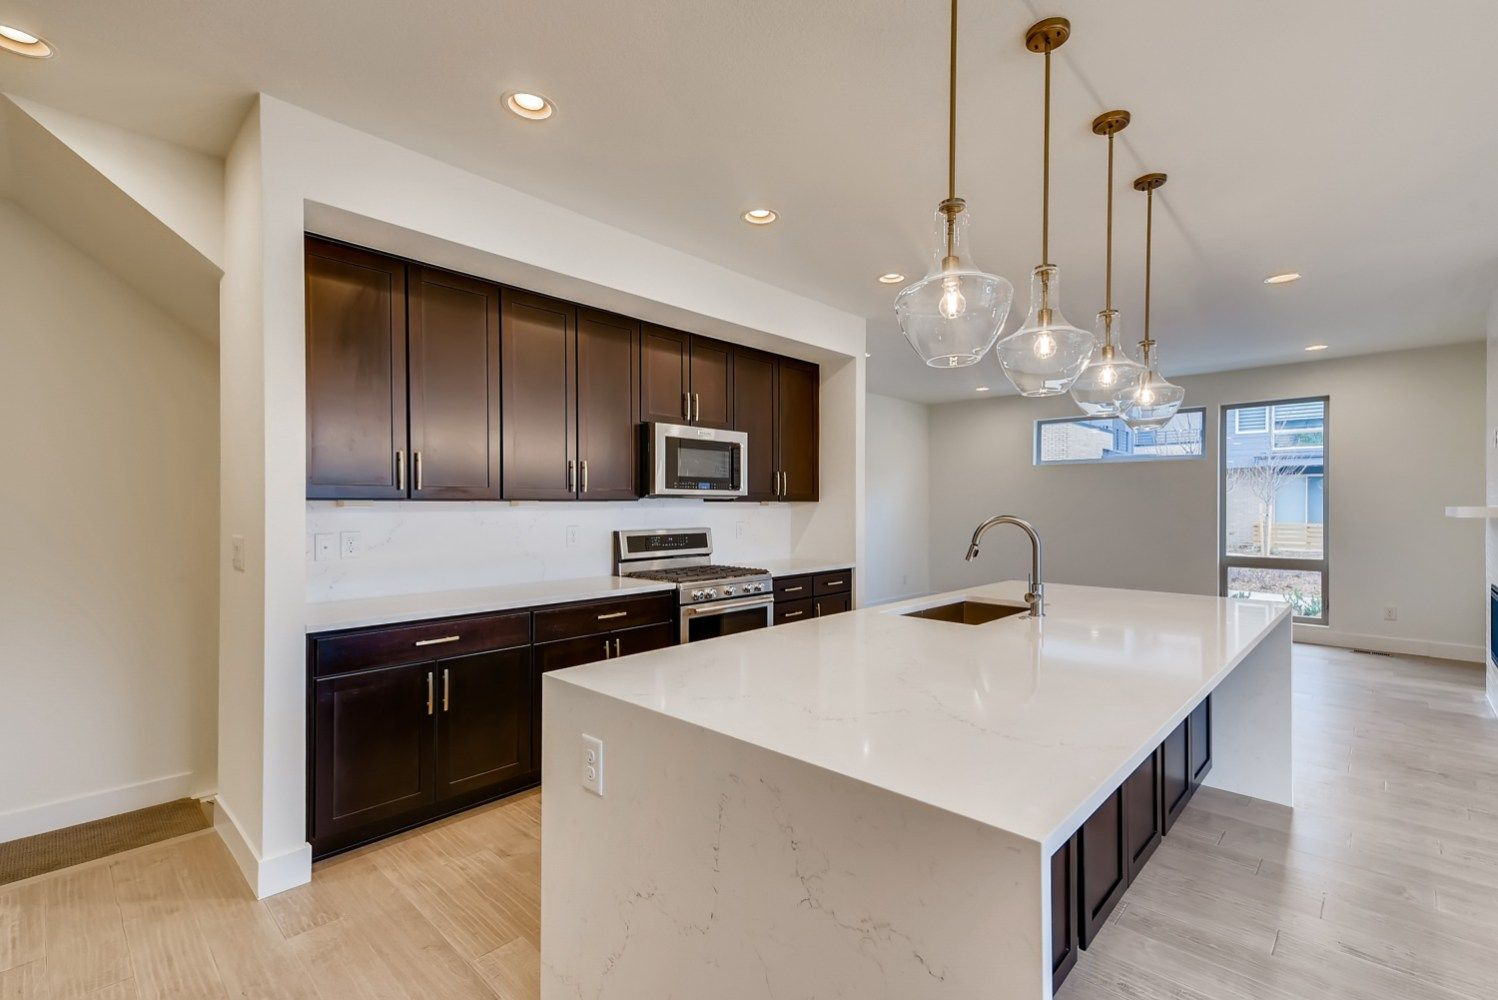 Kitchen featured in the Orion Series - Main Floor Master By Koelbel Urban Homes in Denver, CO